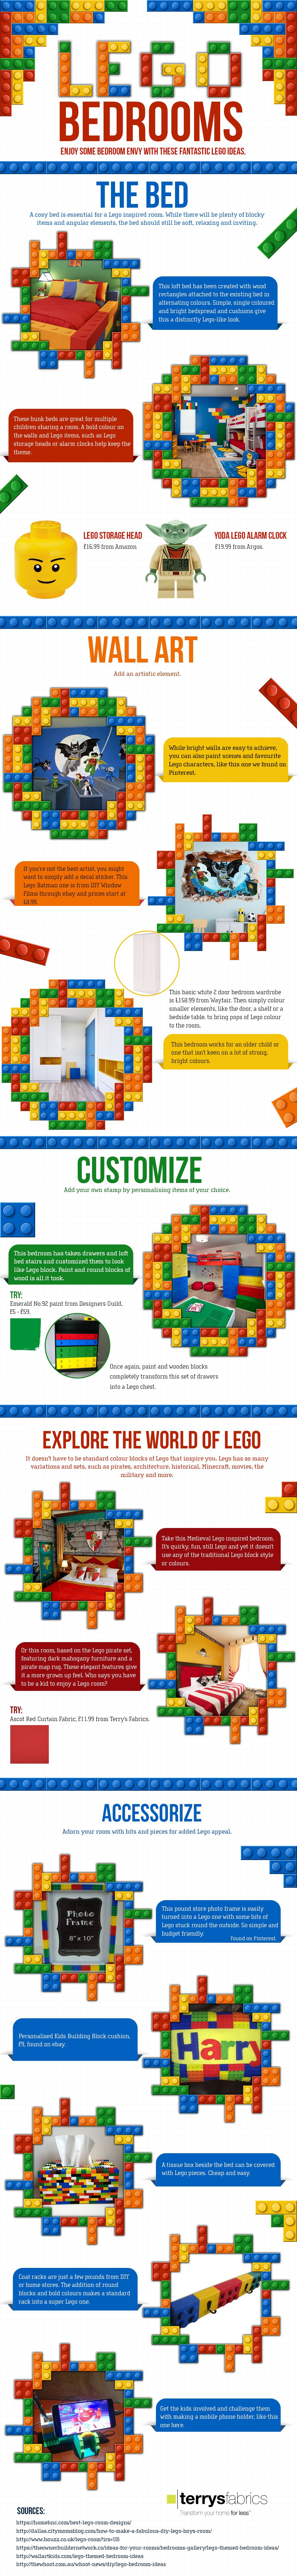 Lego Bedrooms #Infographic